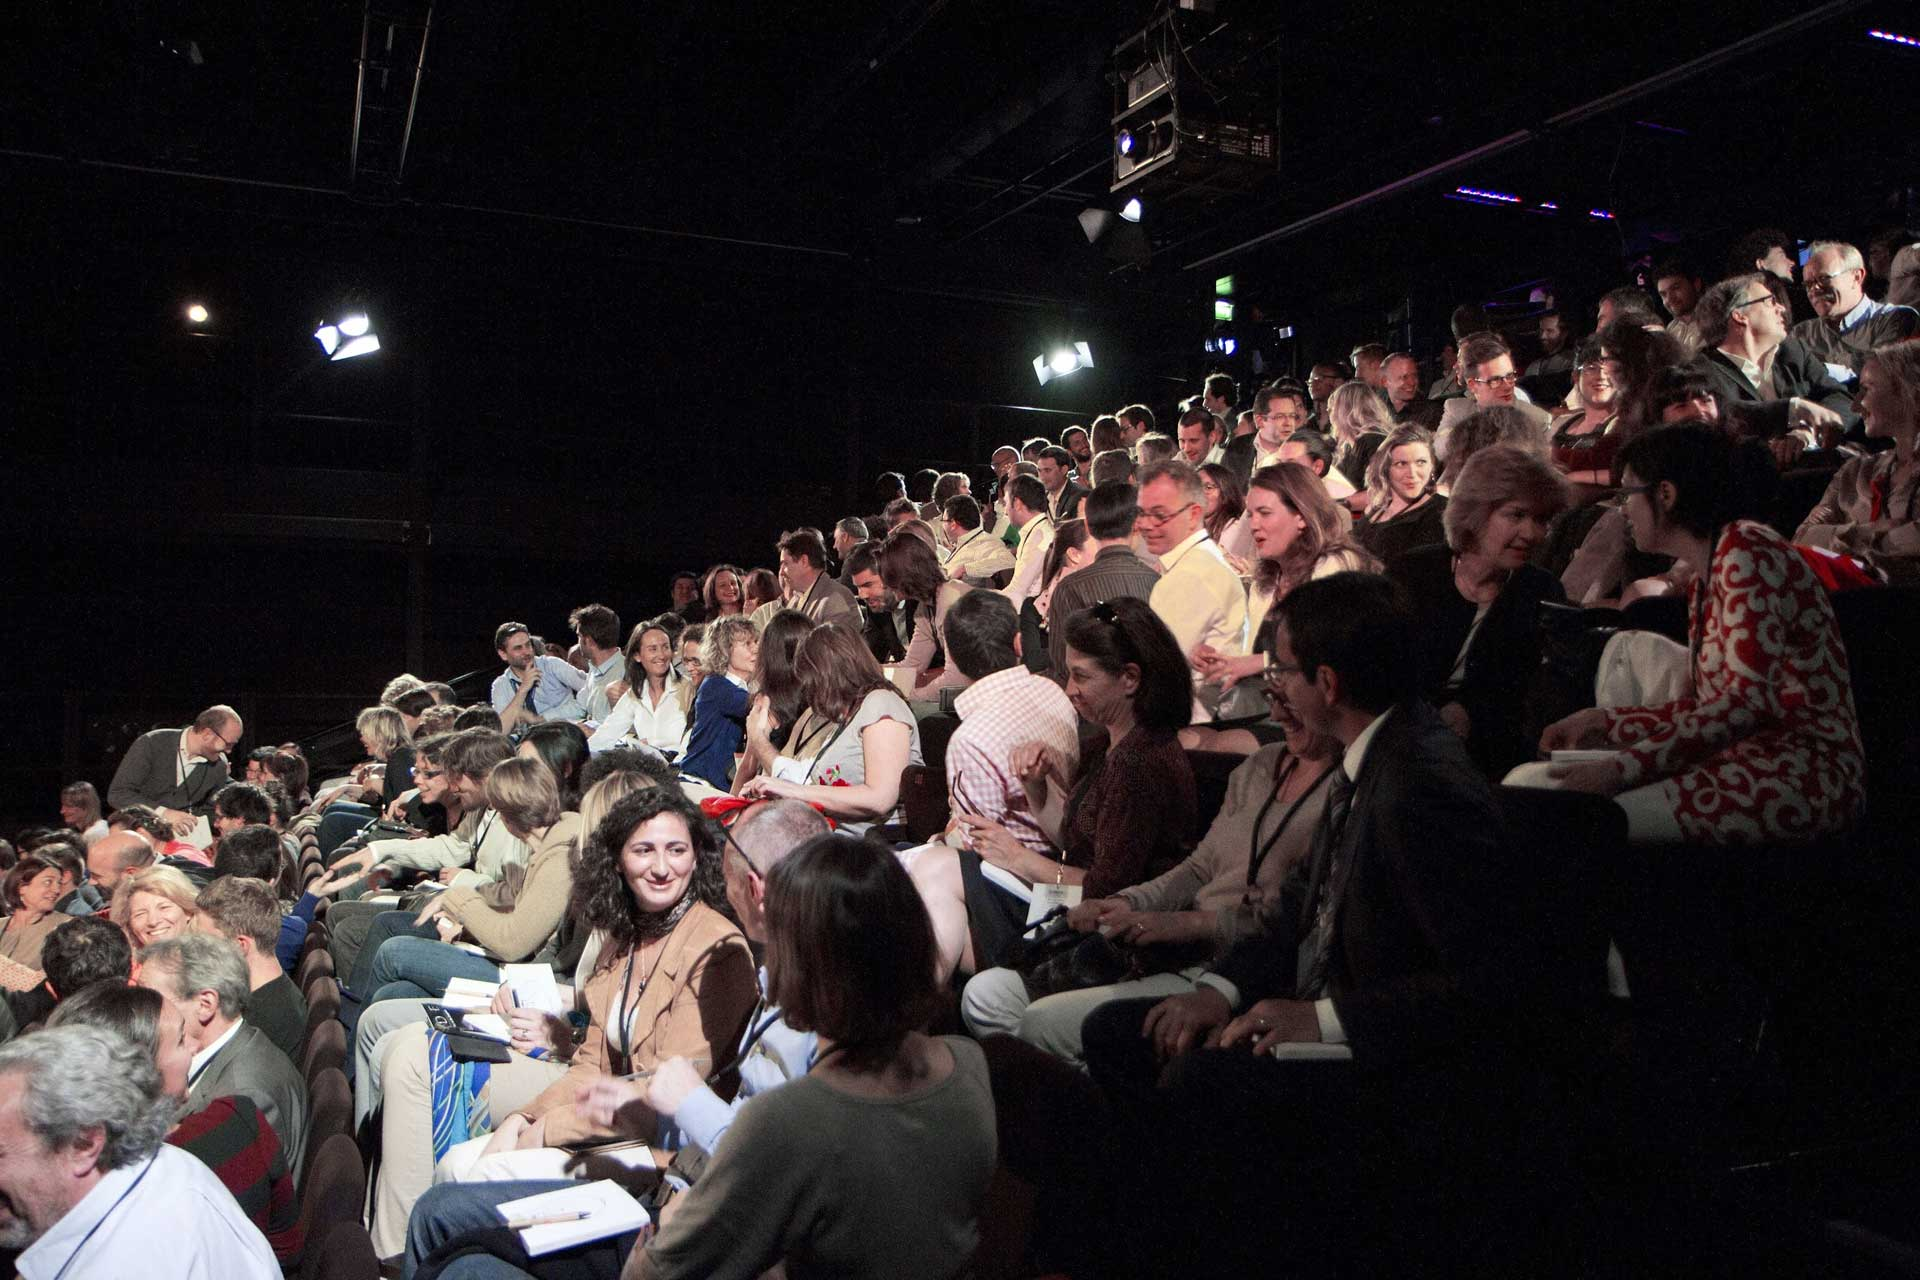 conference-TEDxParis-2013-3.jpg